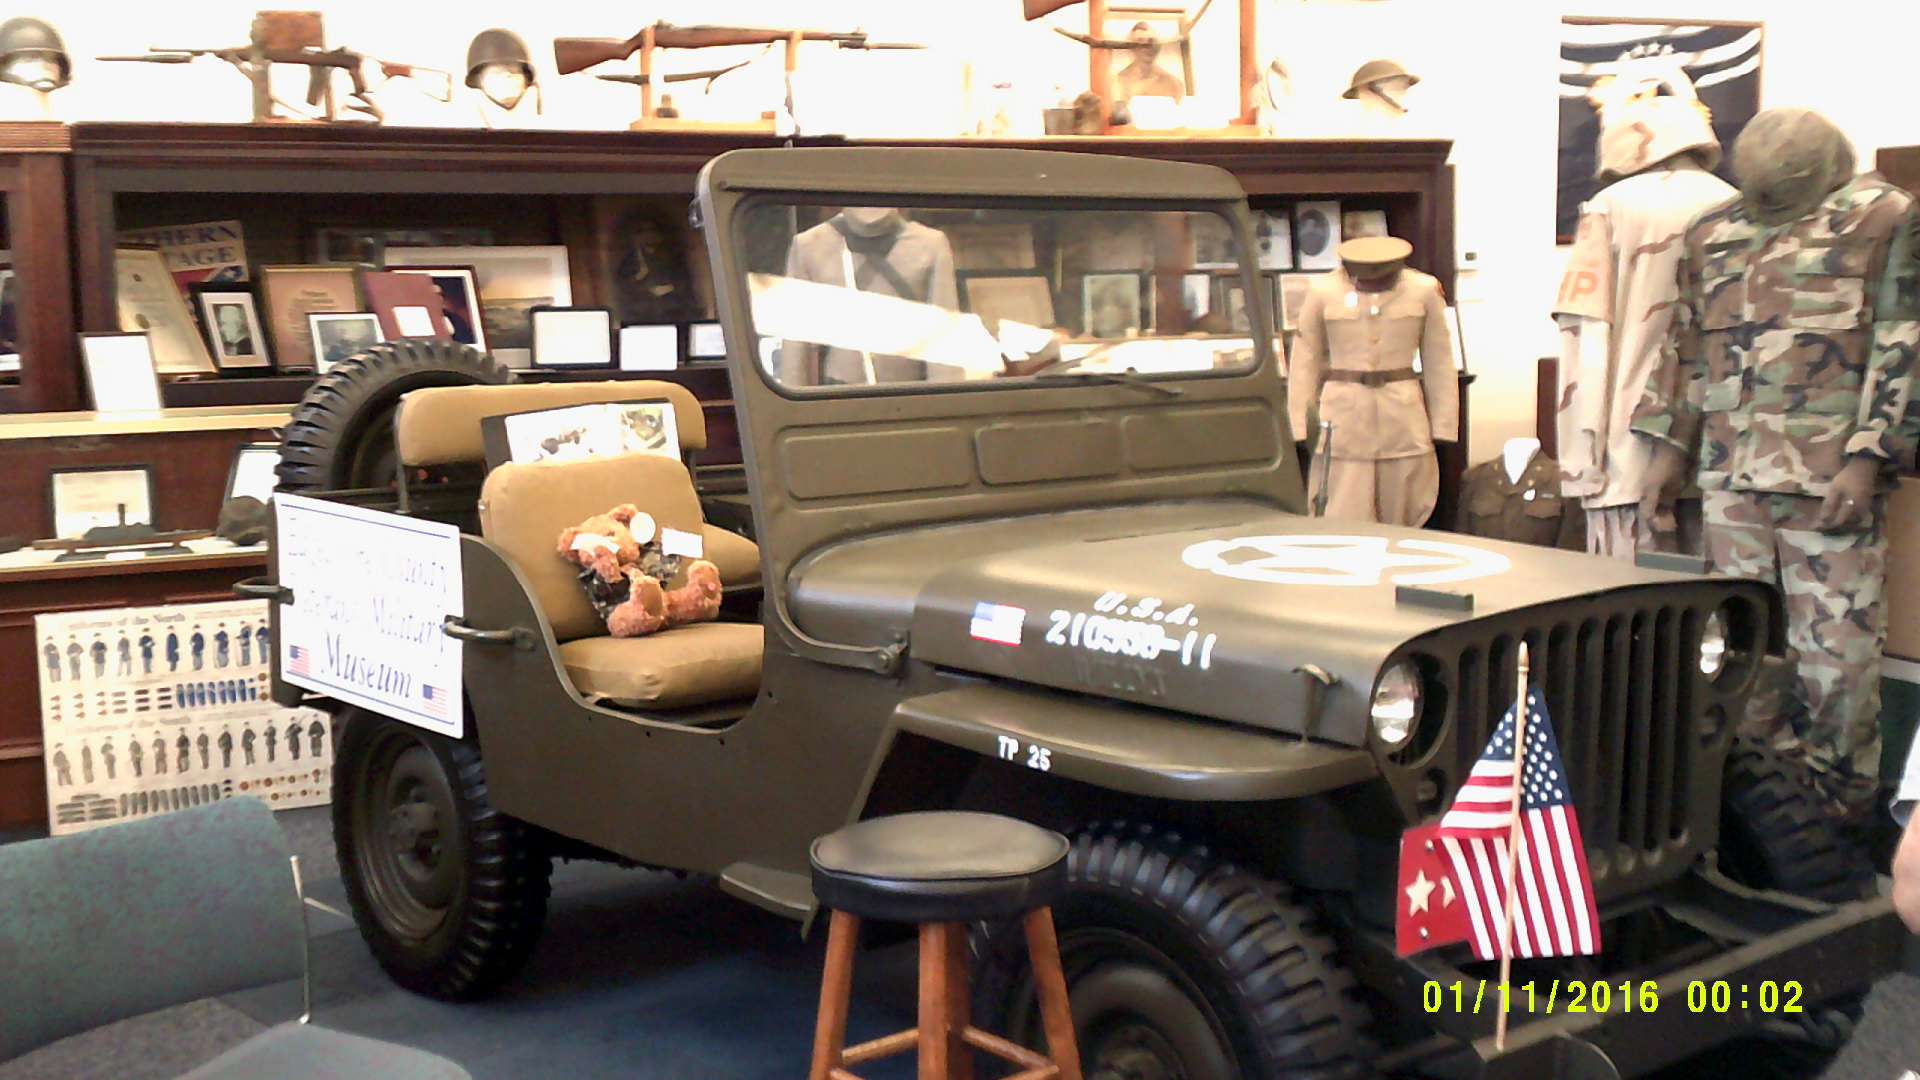 1942 Willys Jeep. Donated by Joel K Bourne, and restored by the Auto Trade Department of Edgecombe Community College. This jeep is fully functional and used for parades and other civic events.